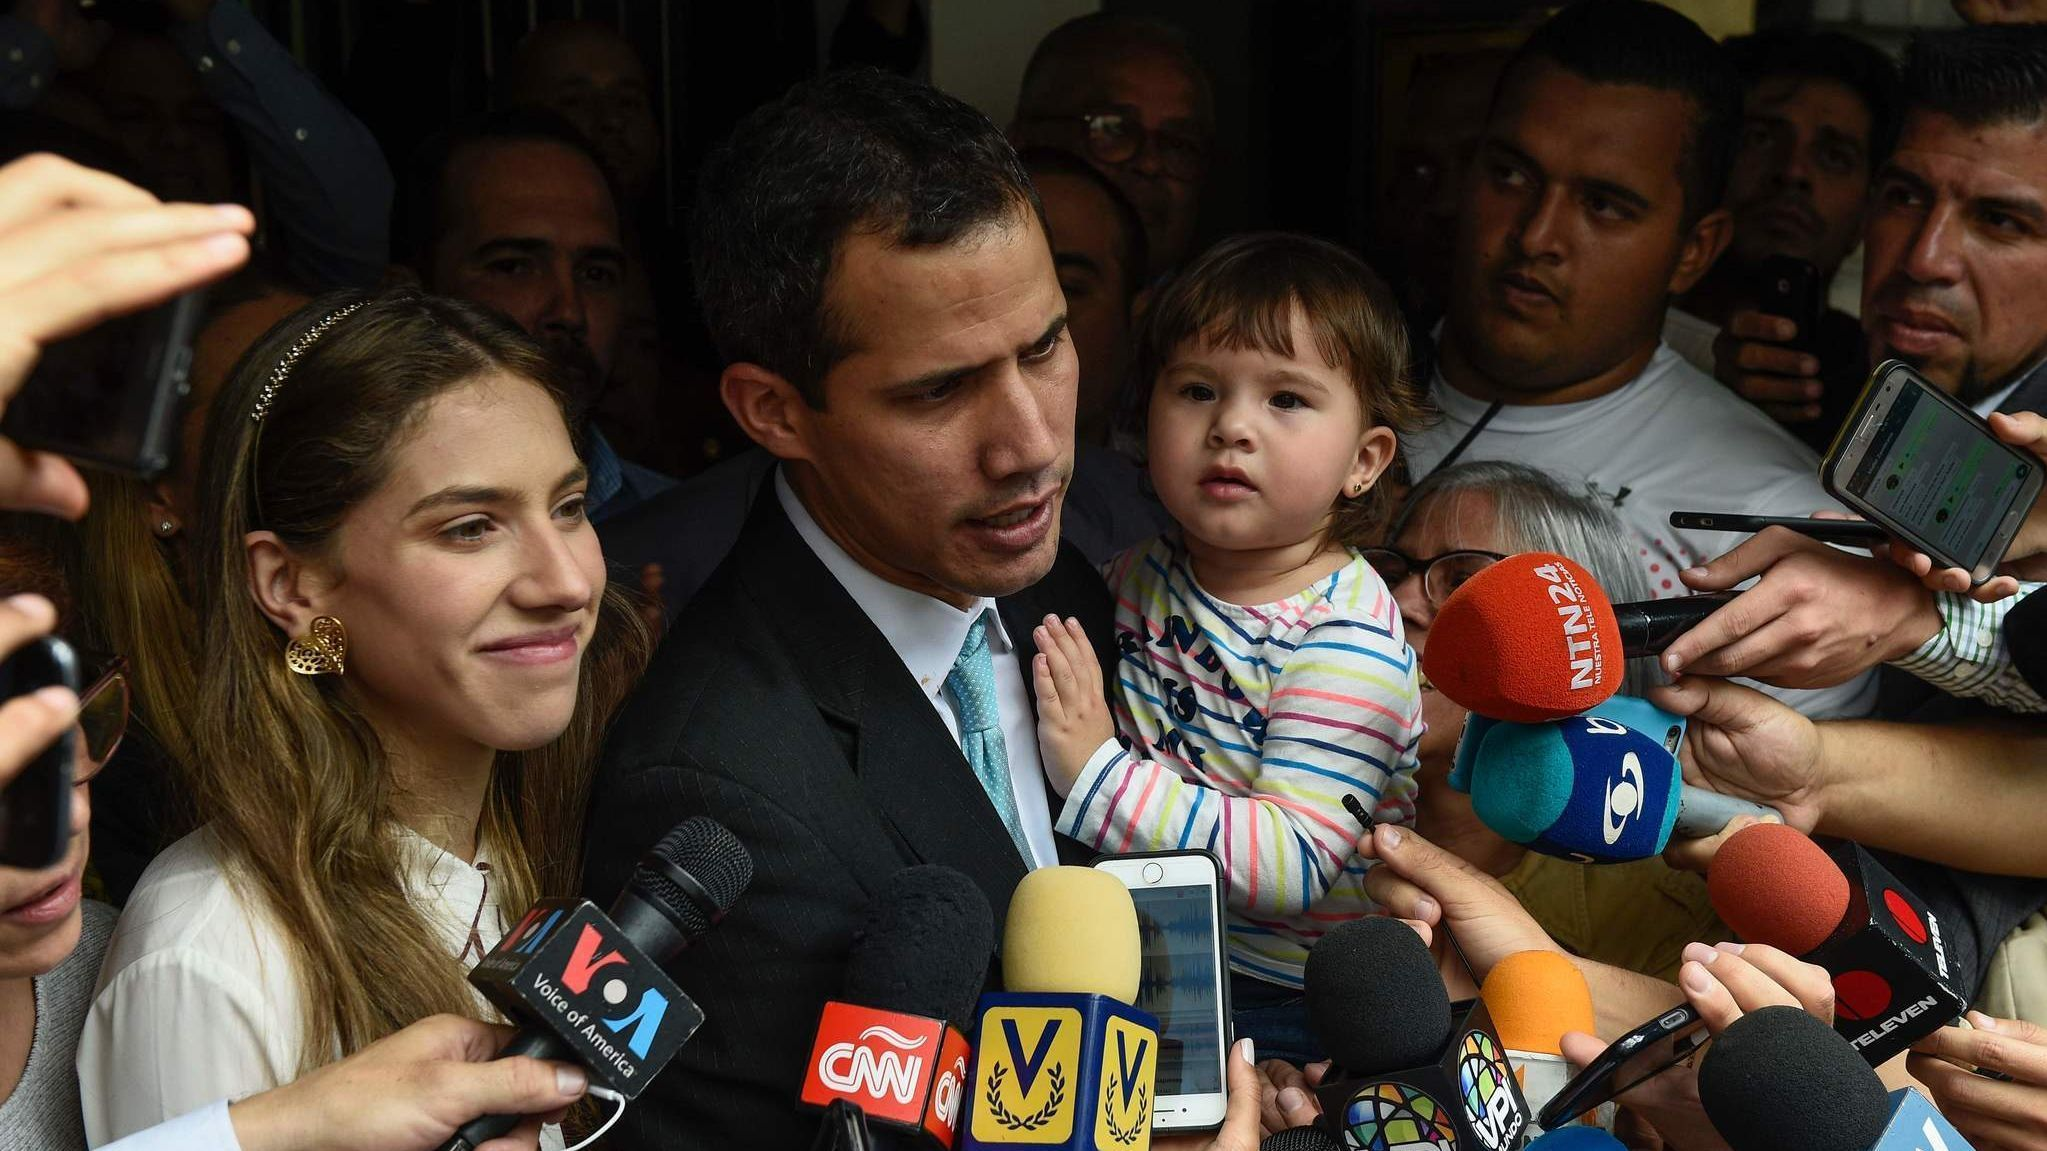 'I hold you responsible': Venezuela's opposition leader says police were sent to intimidate his family